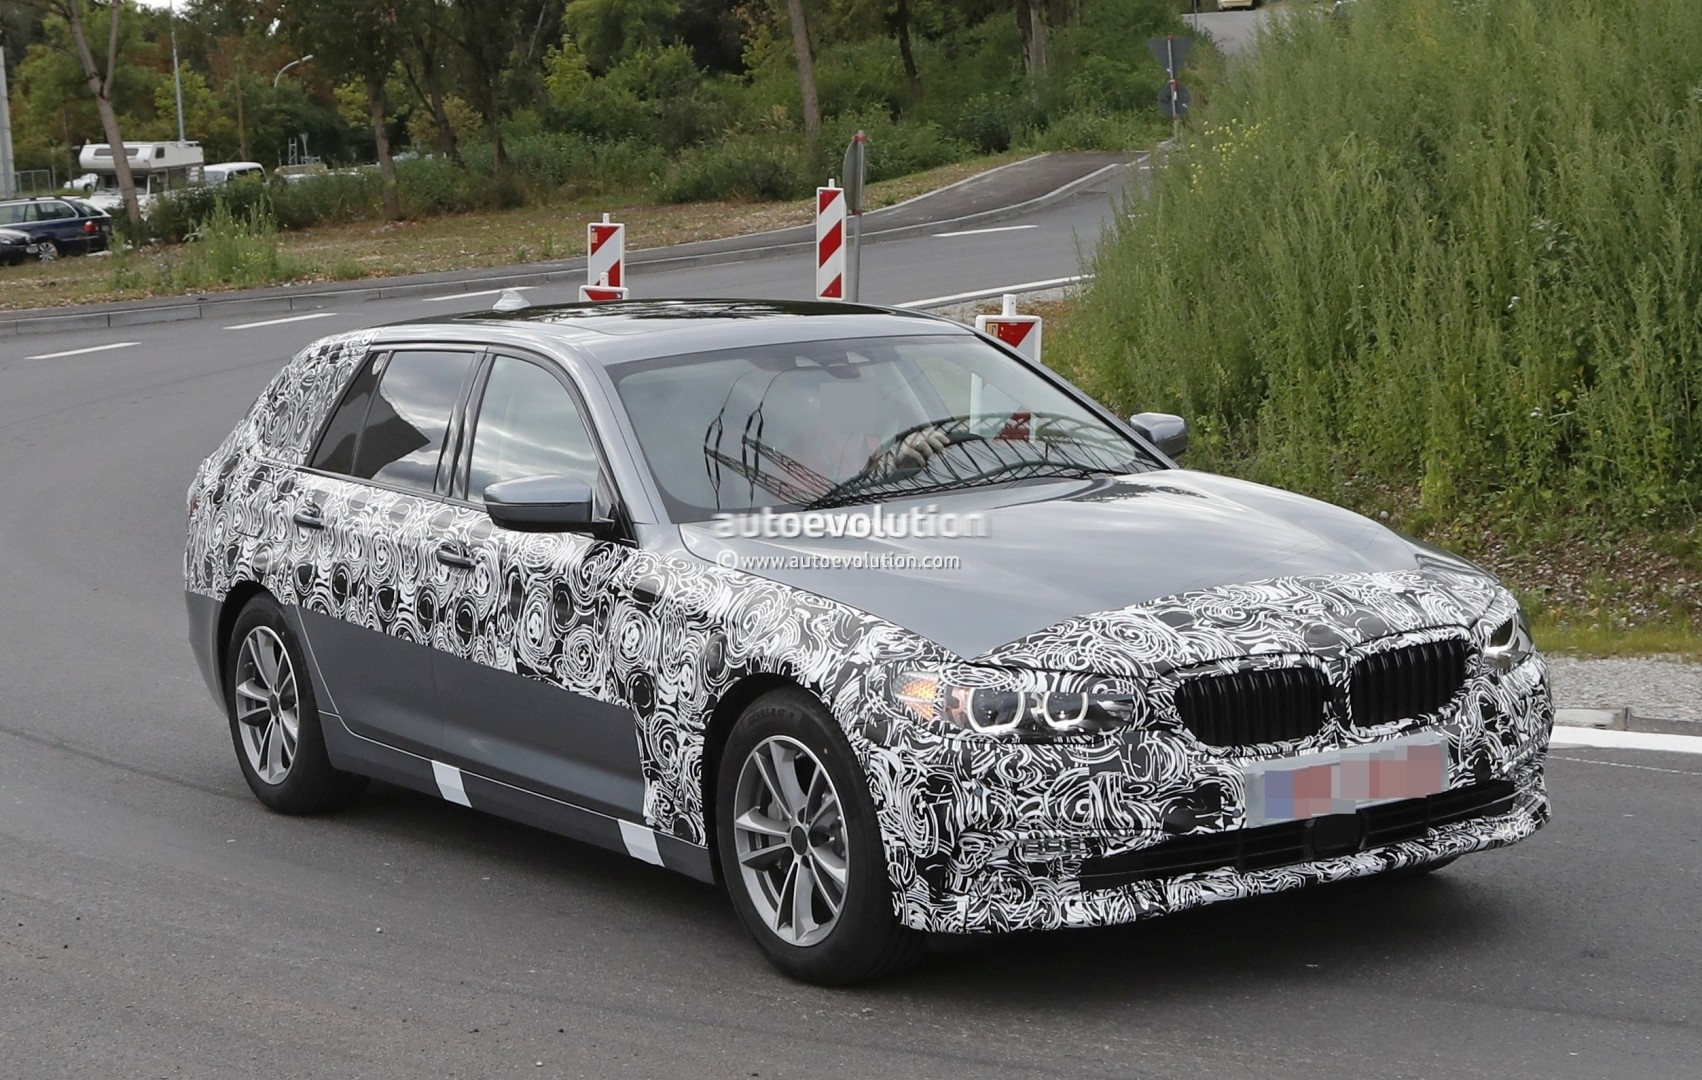 2017 bmw 5 series touring pre production car loses some camo reveals design autoevolution. Black Bedroom Furniture Sets. Home Design Ideas